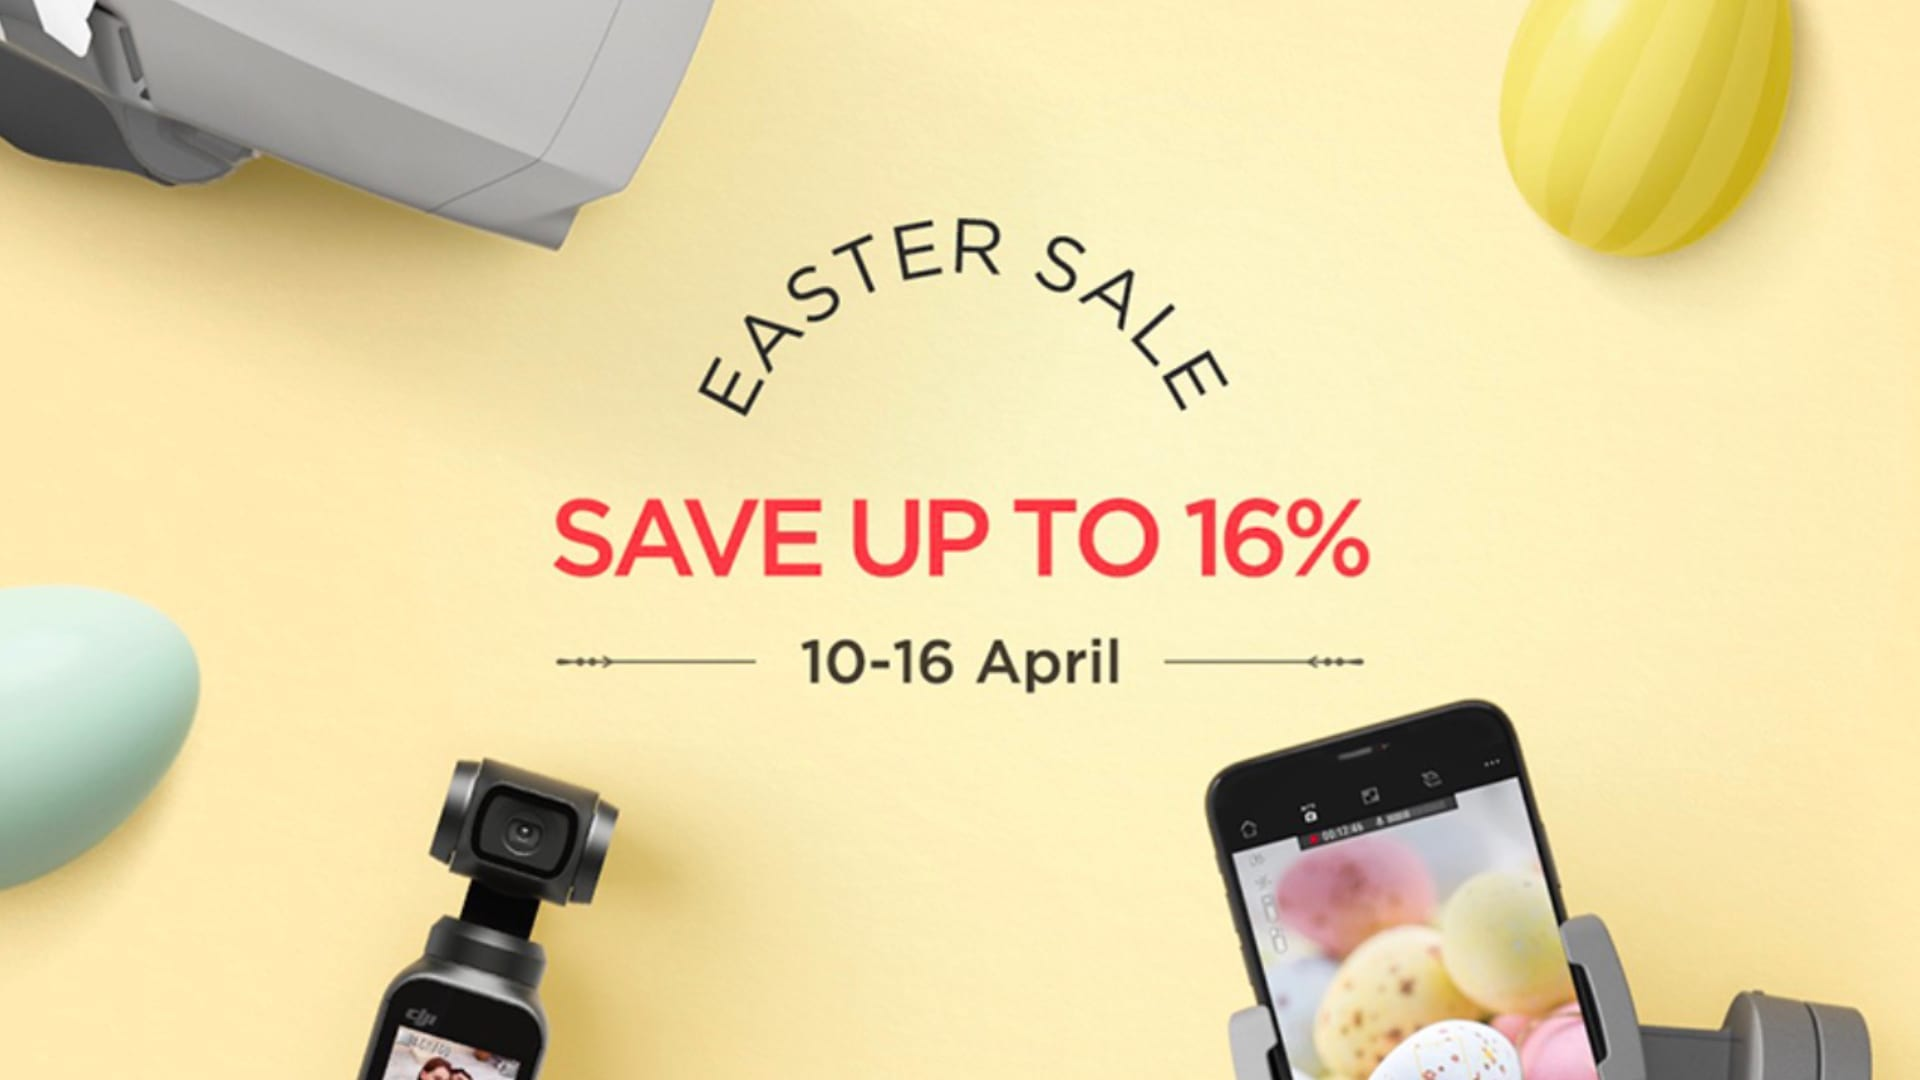 DJI officially announced its DJI Easter Sale for the U.S. and Canada with some nice discounts on a limited number of DJI products.